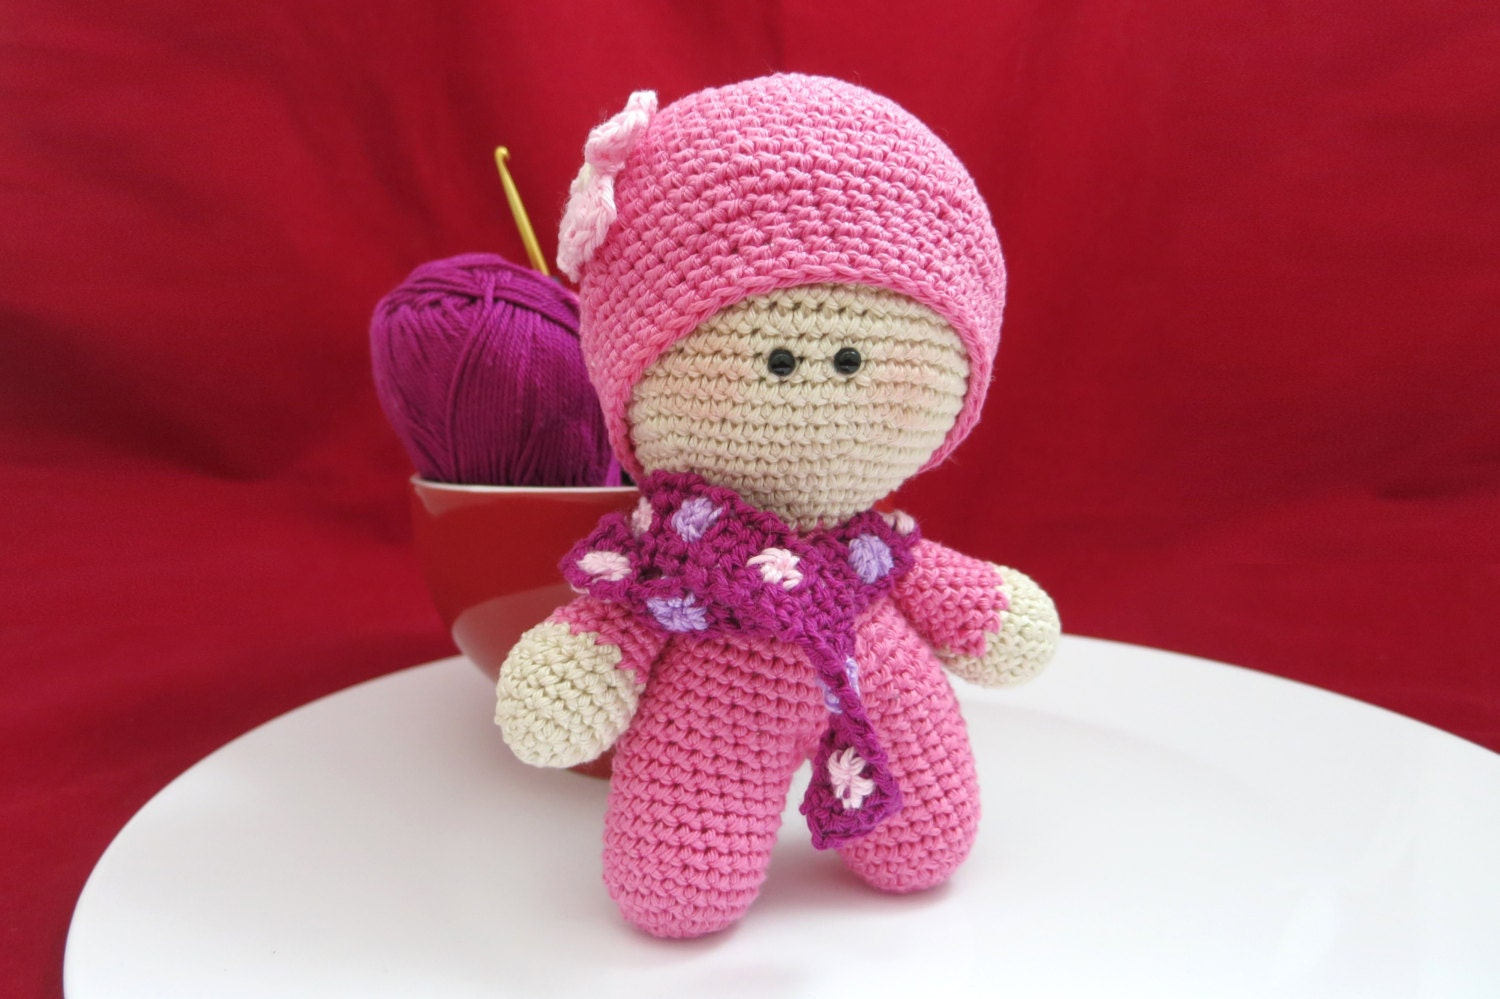 Big Head Baby Doll Pink Doll Crochet Doll Christmas Gift